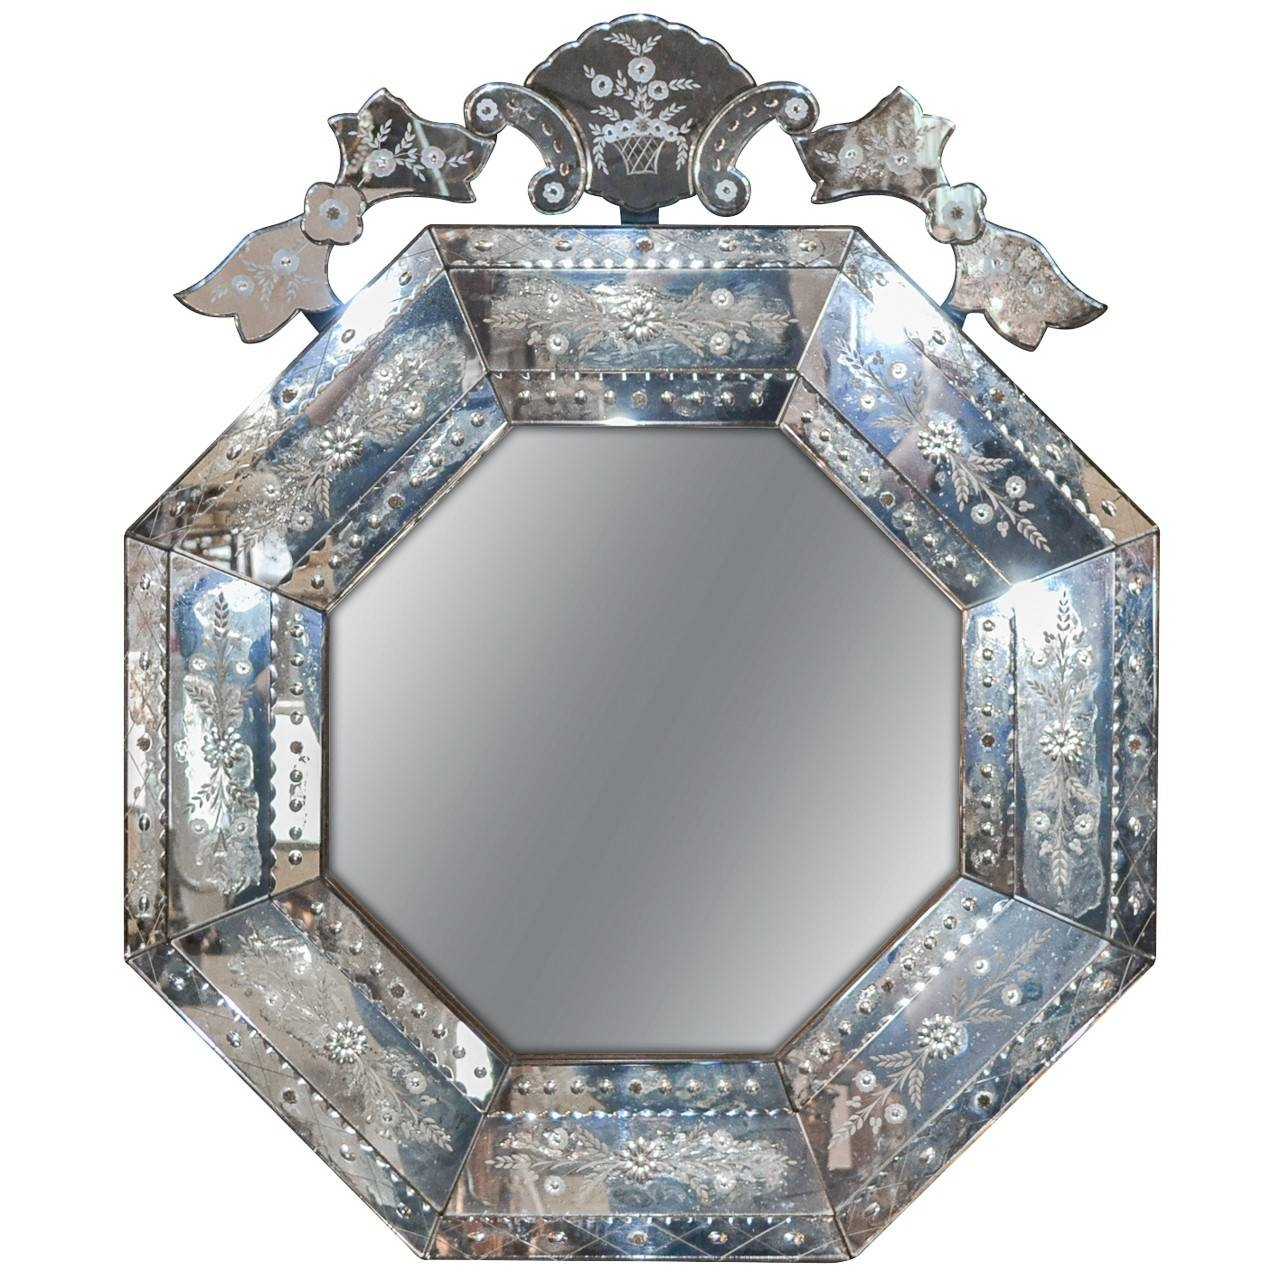 Italian Venetian Etched Glass Mirror - Legacy Antiques regarding Venetian Etched Glass Mirrors (Image 11 of 15)